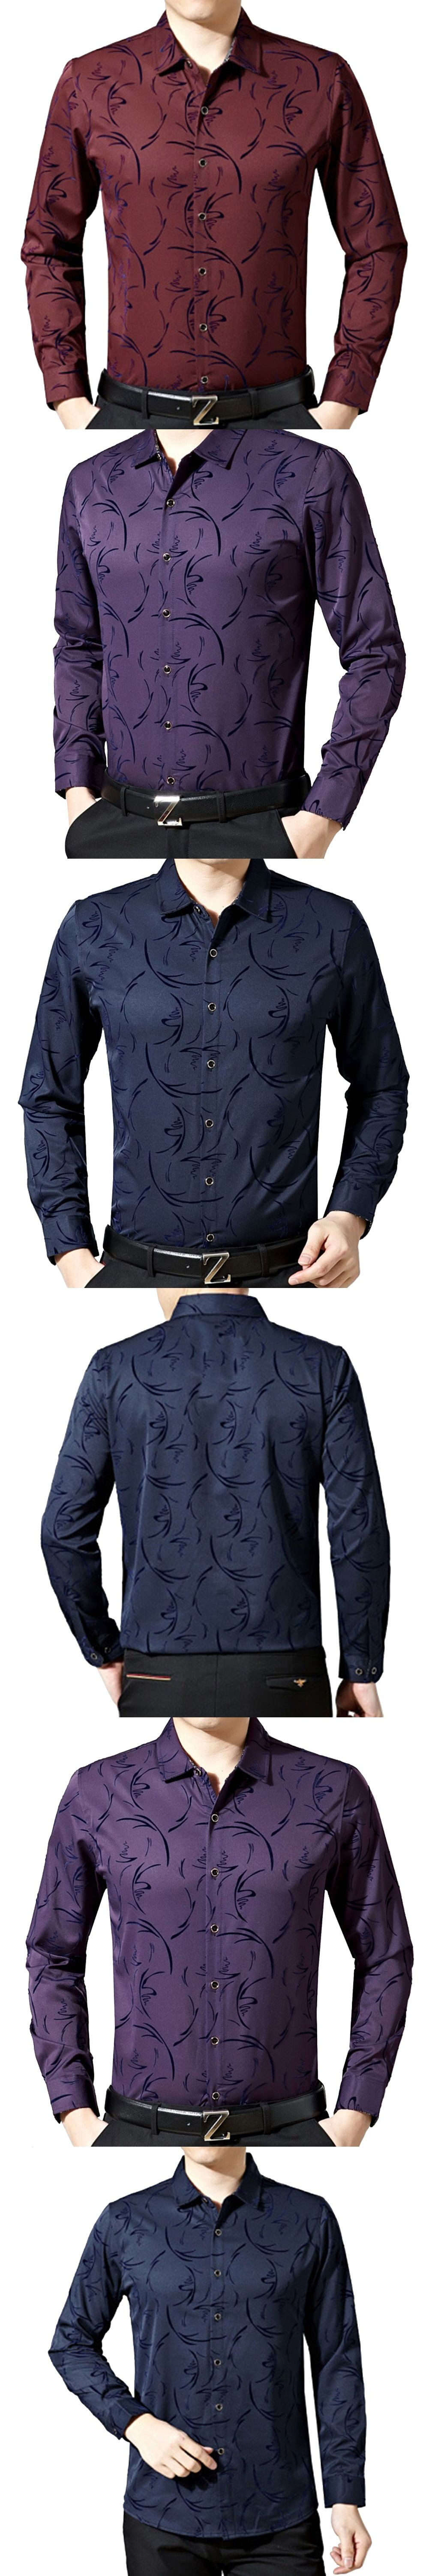 New style men shirt spring new brand business menus slim fit shirt